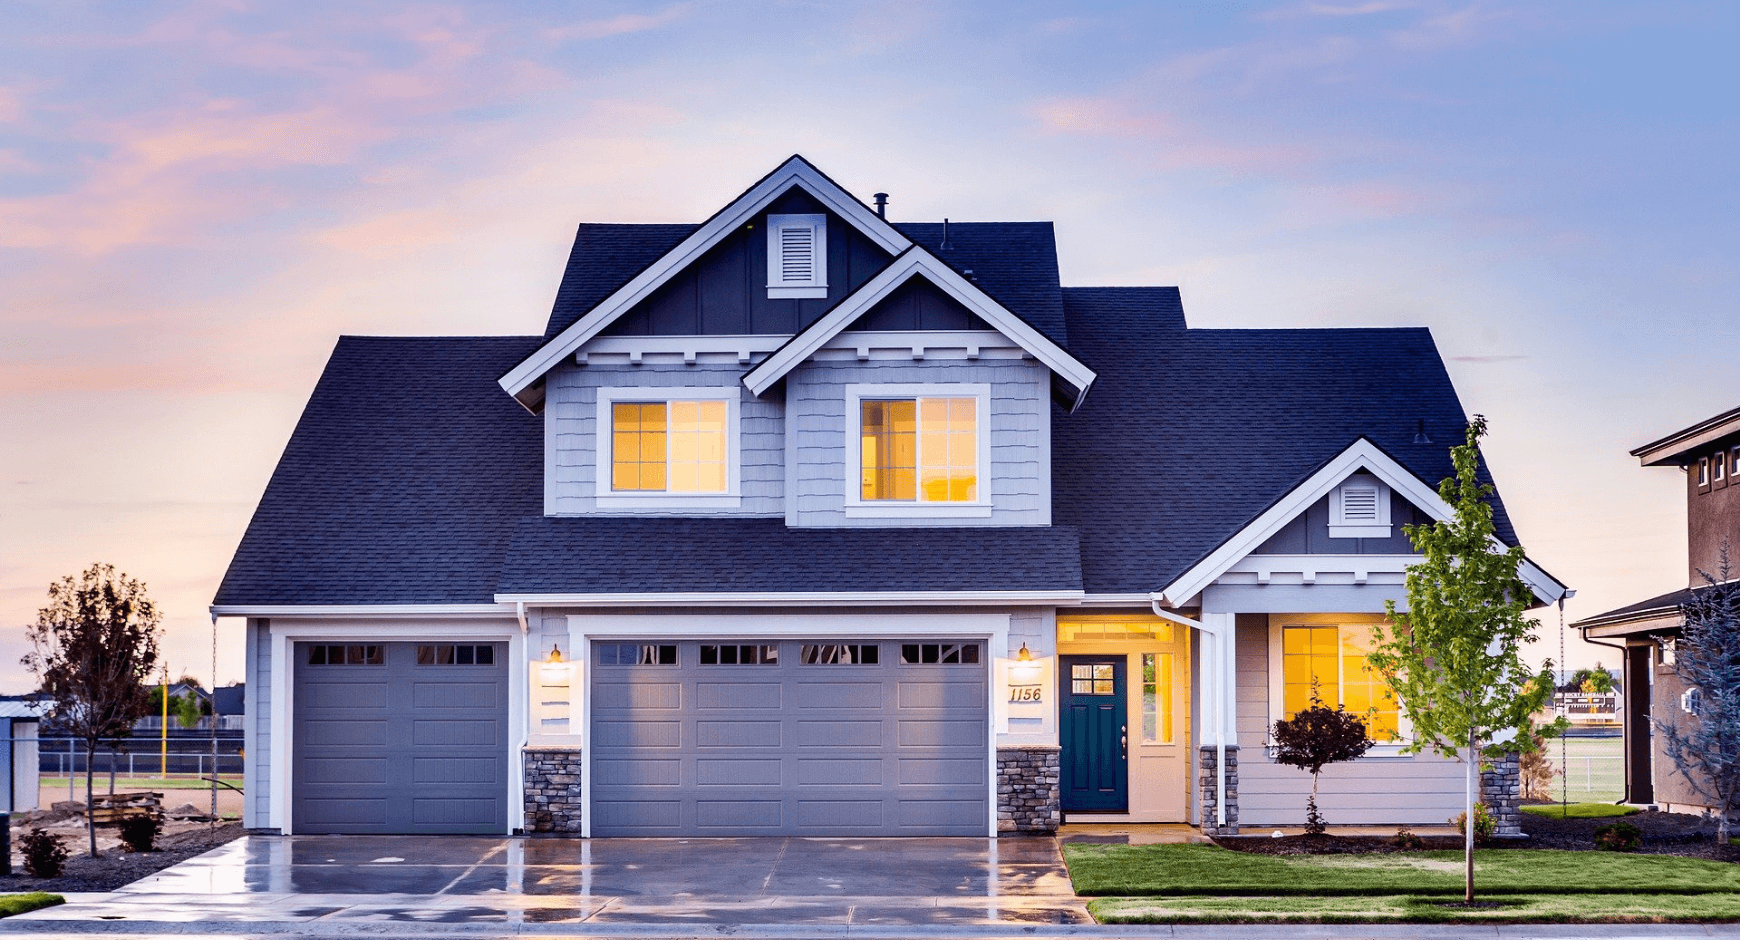 Image of a home with vinyl window trim